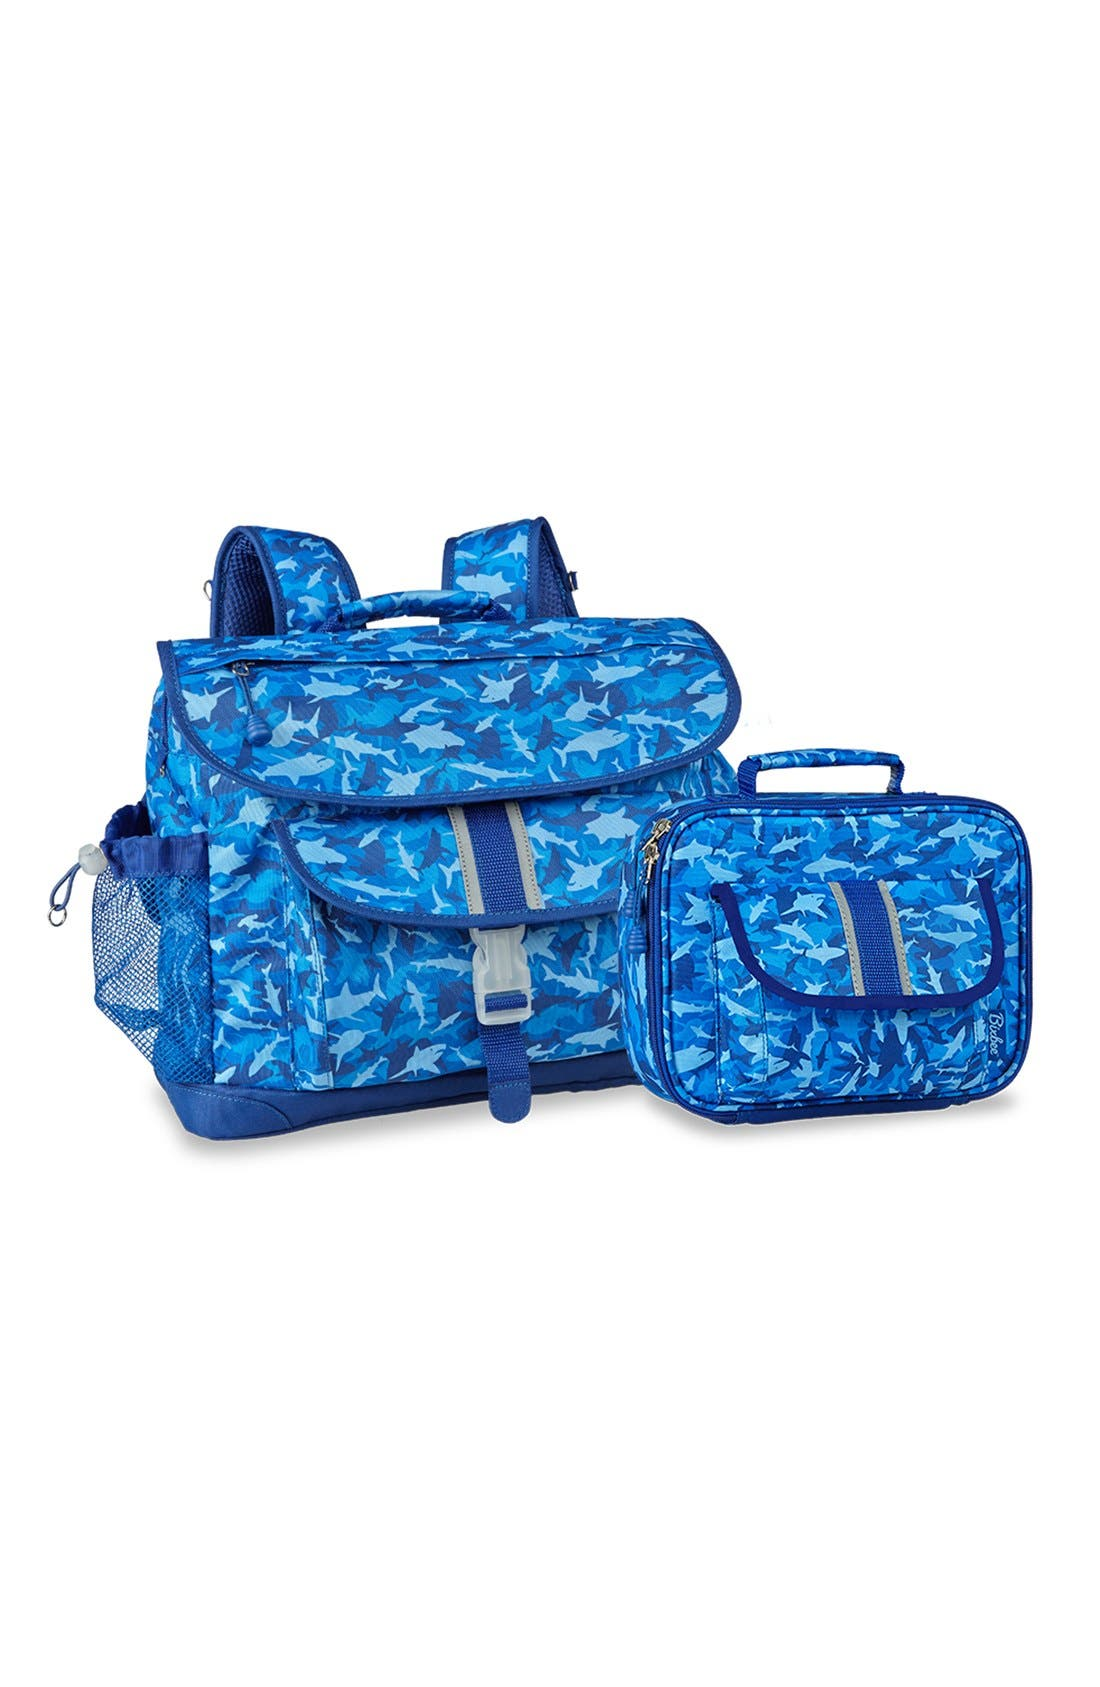 BIXBEE 'Large Shark Camo' Water Resistant Backpack &